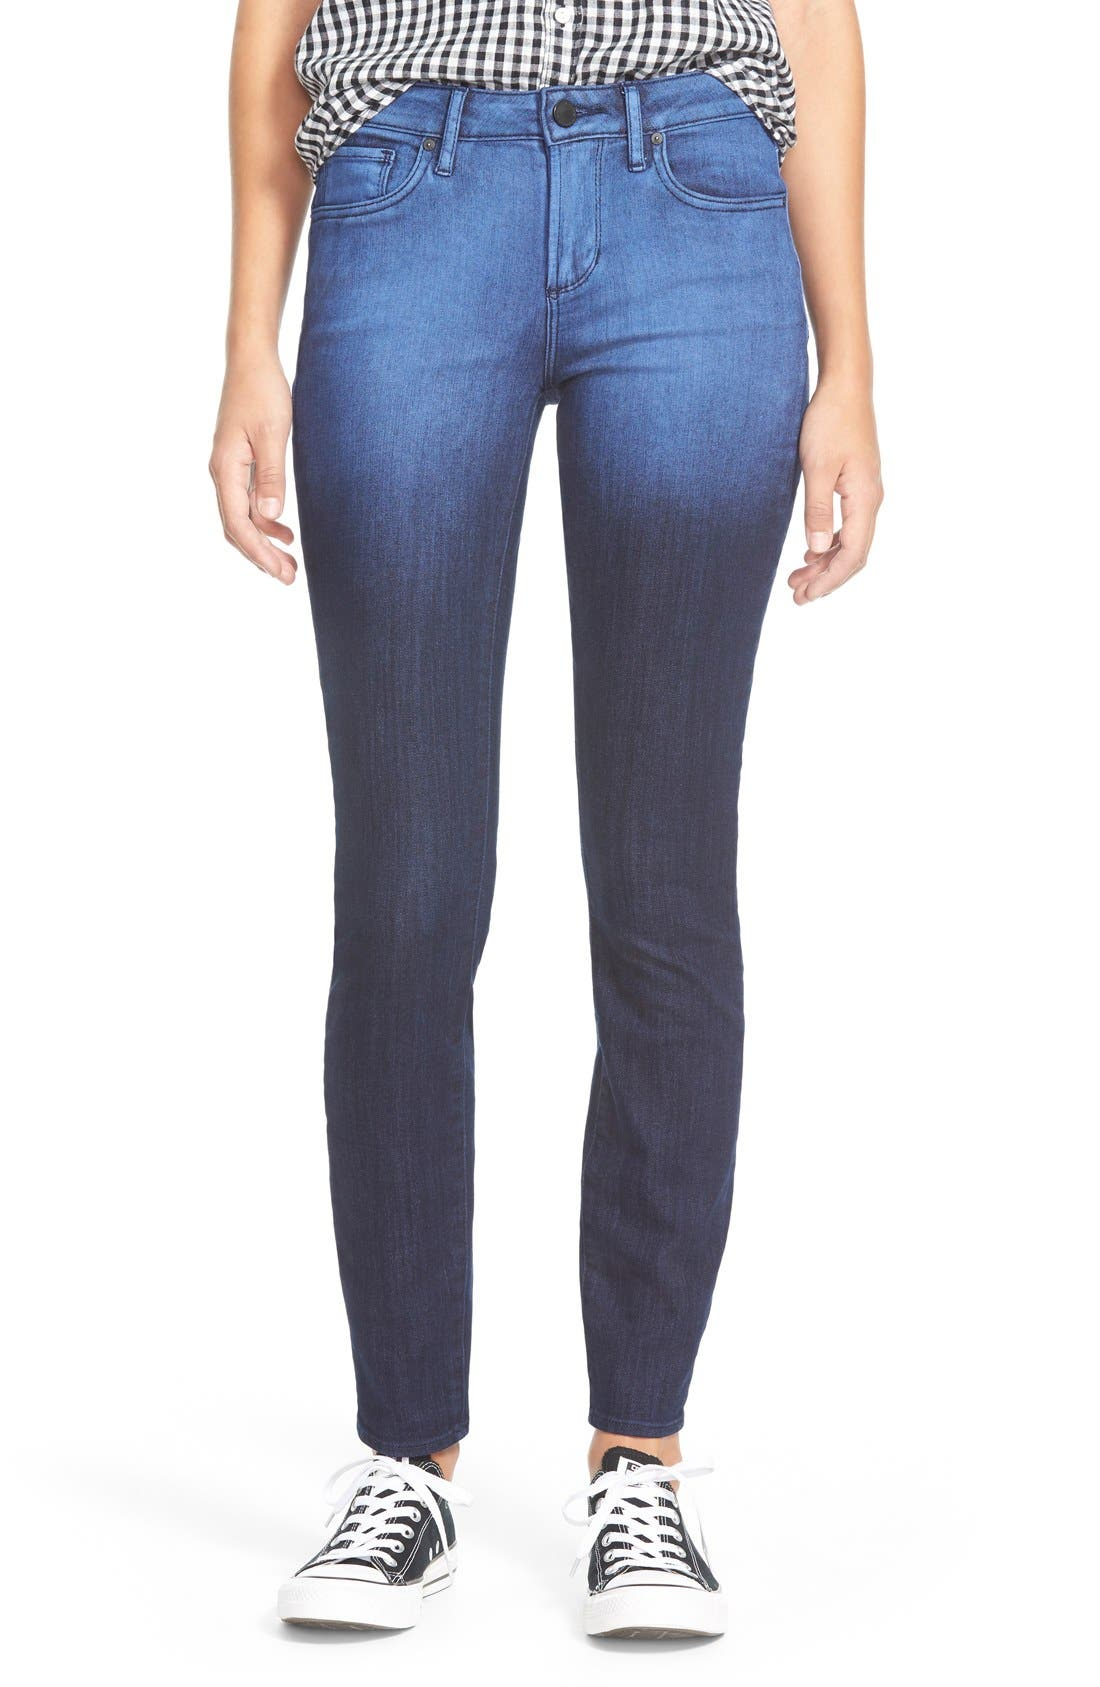 Alternate Image 1 Selected - Articles of Society Red Label 'SoHo' Skinny Jeans (Broadwick)